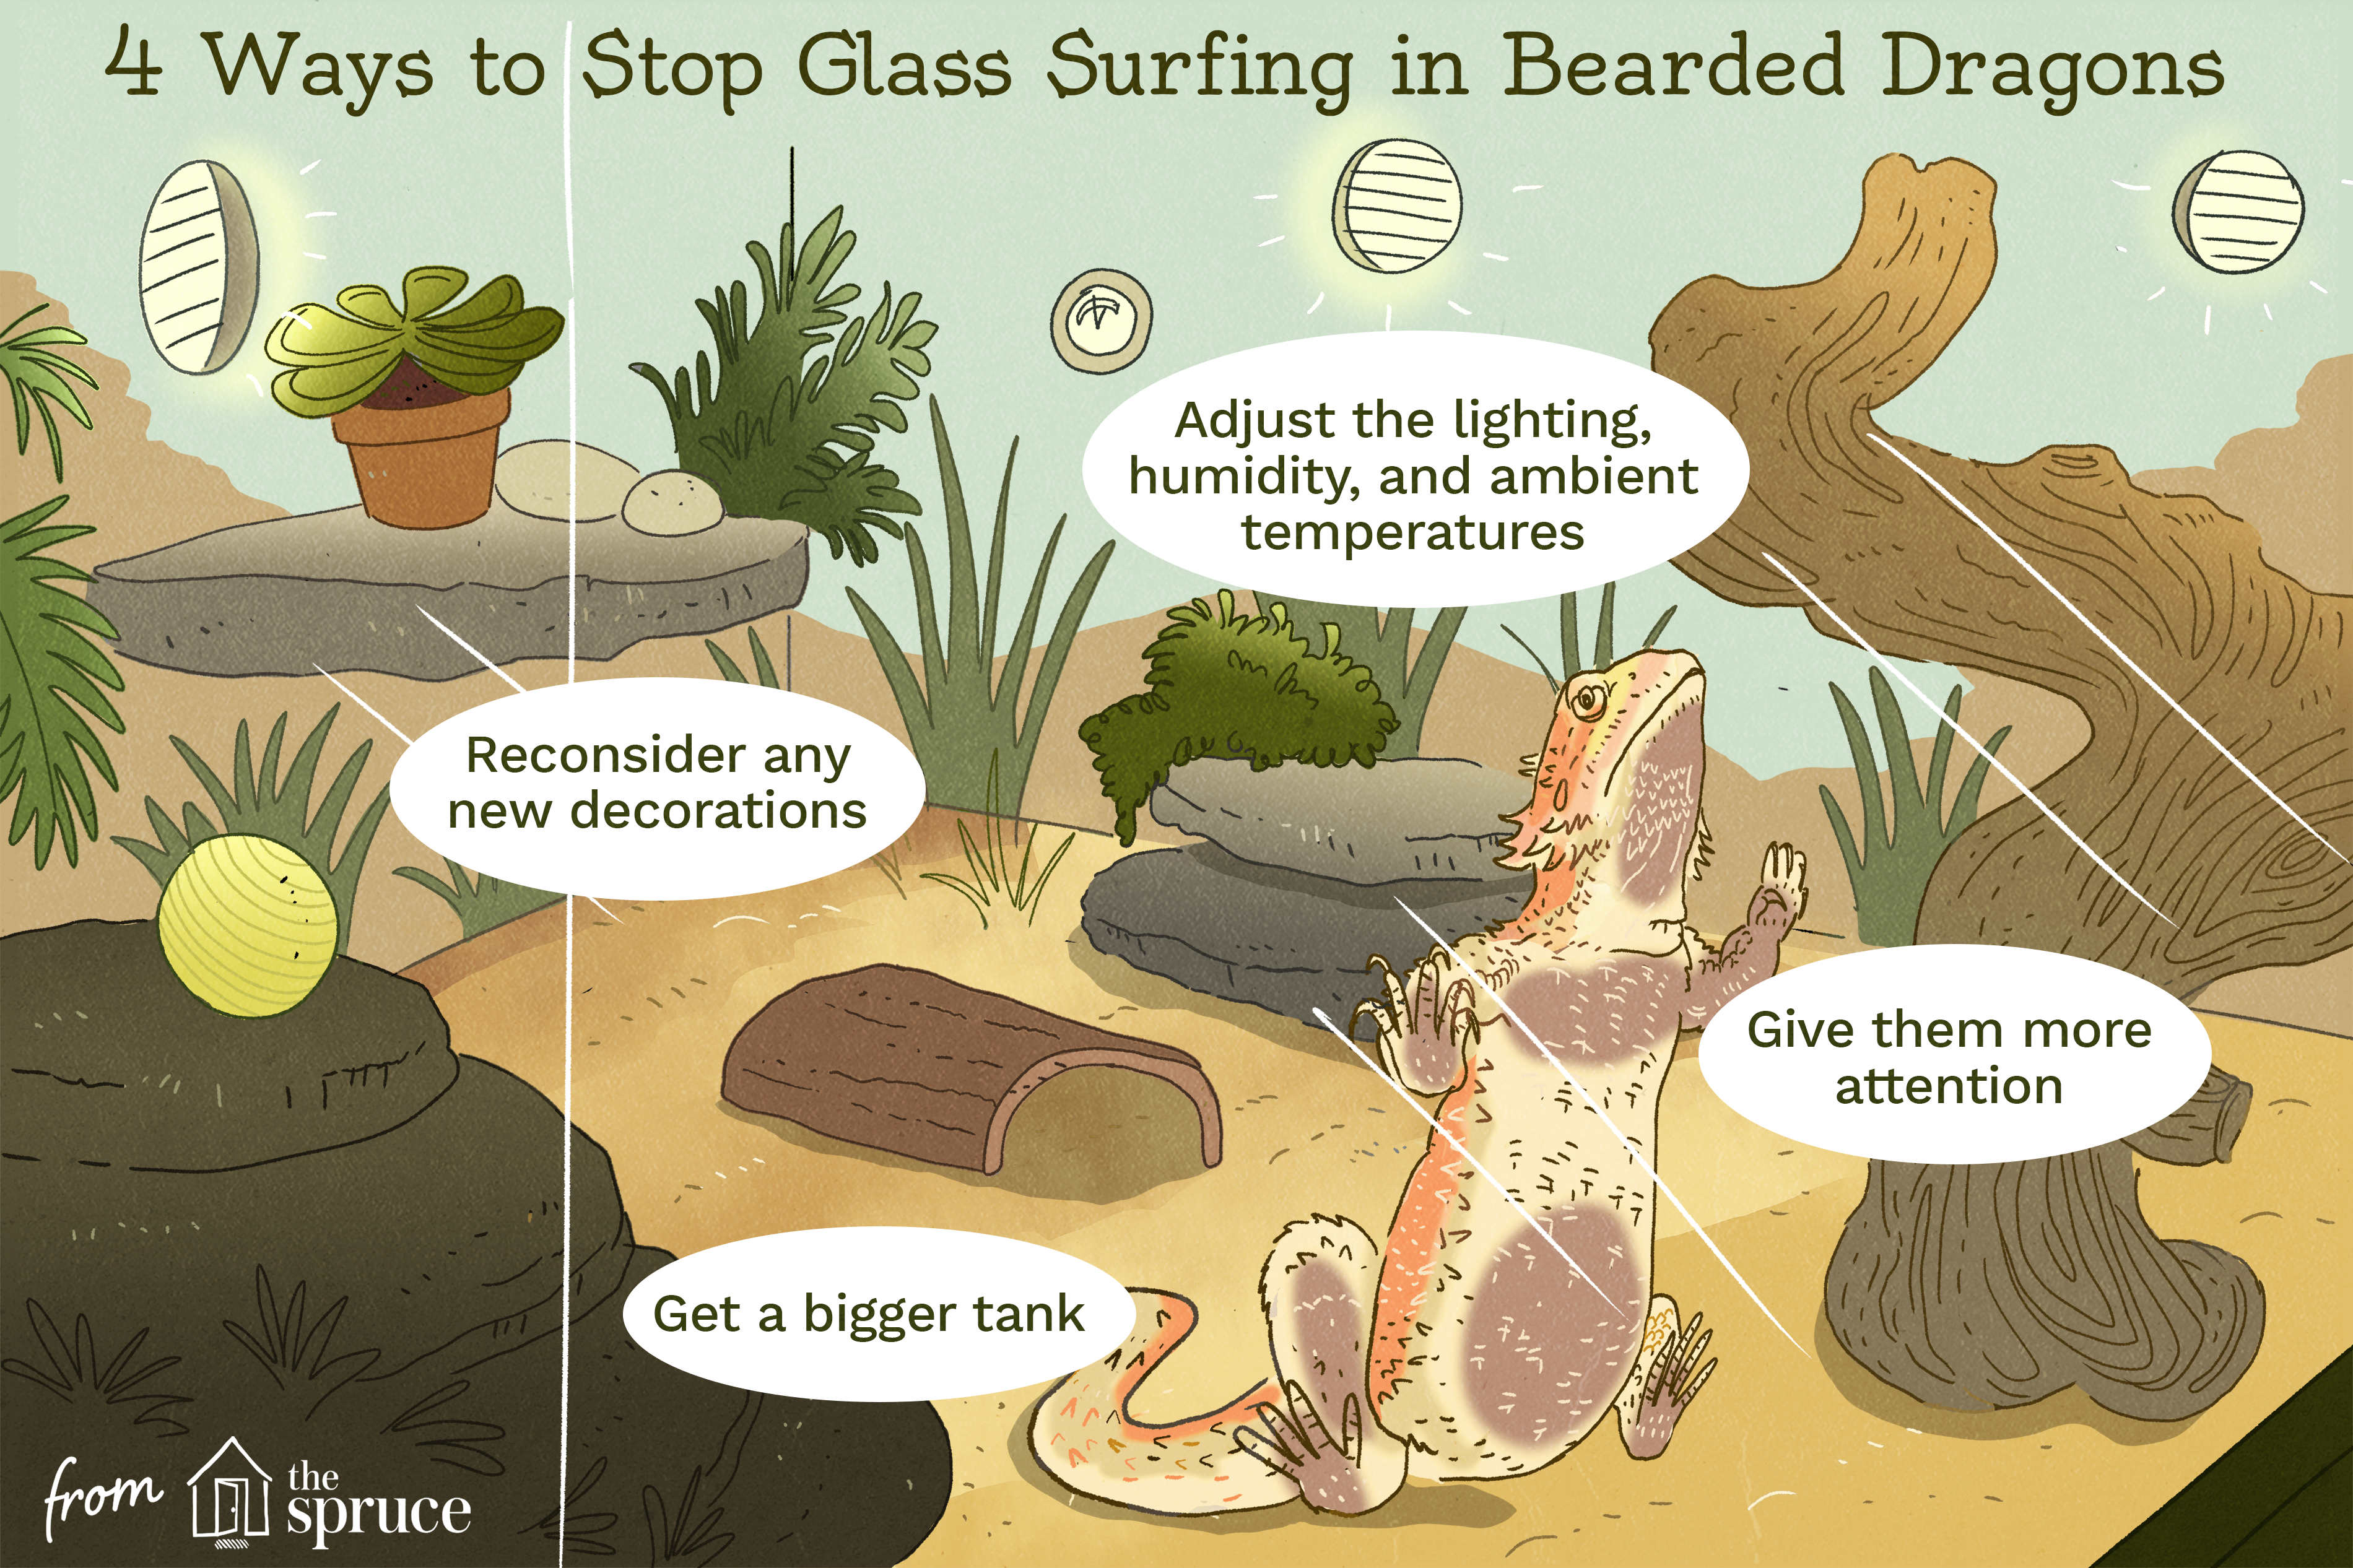 how to stop glass surfing in bearded dragons illustration